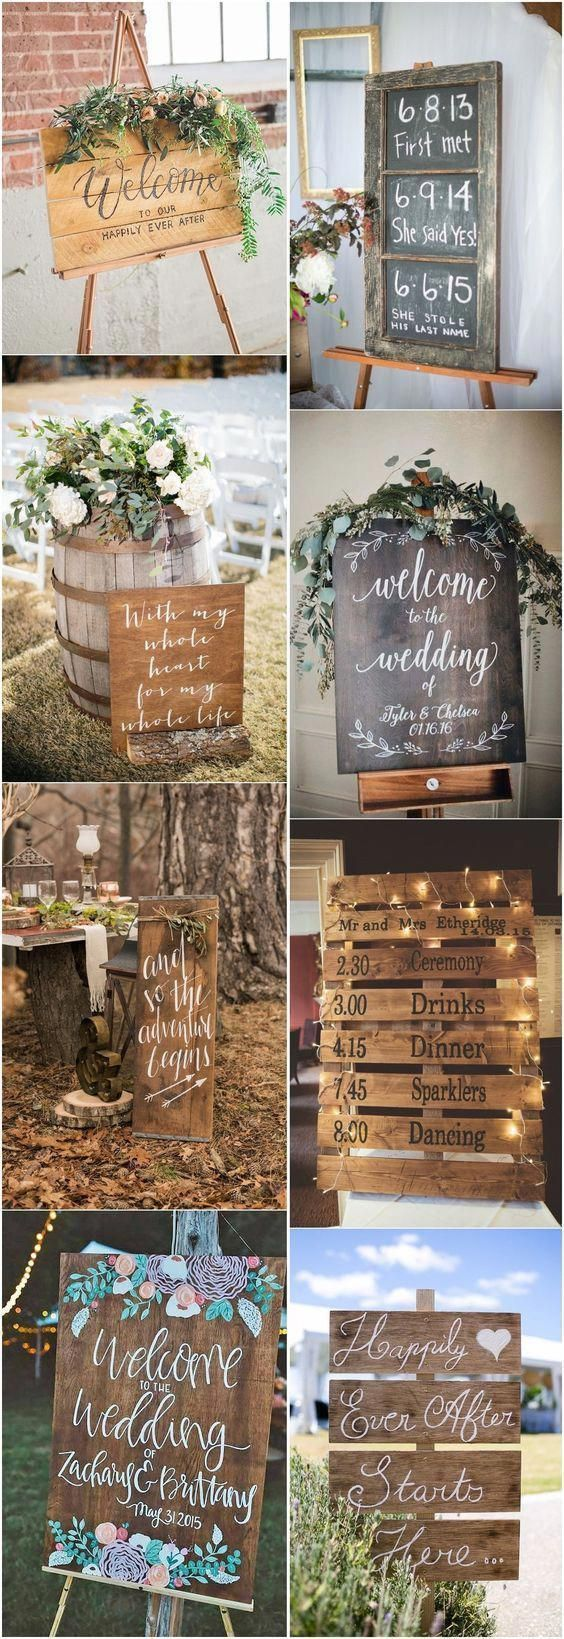 Rustic BudgetFriendly Rustic Wedding Signs Ideas  Weddings